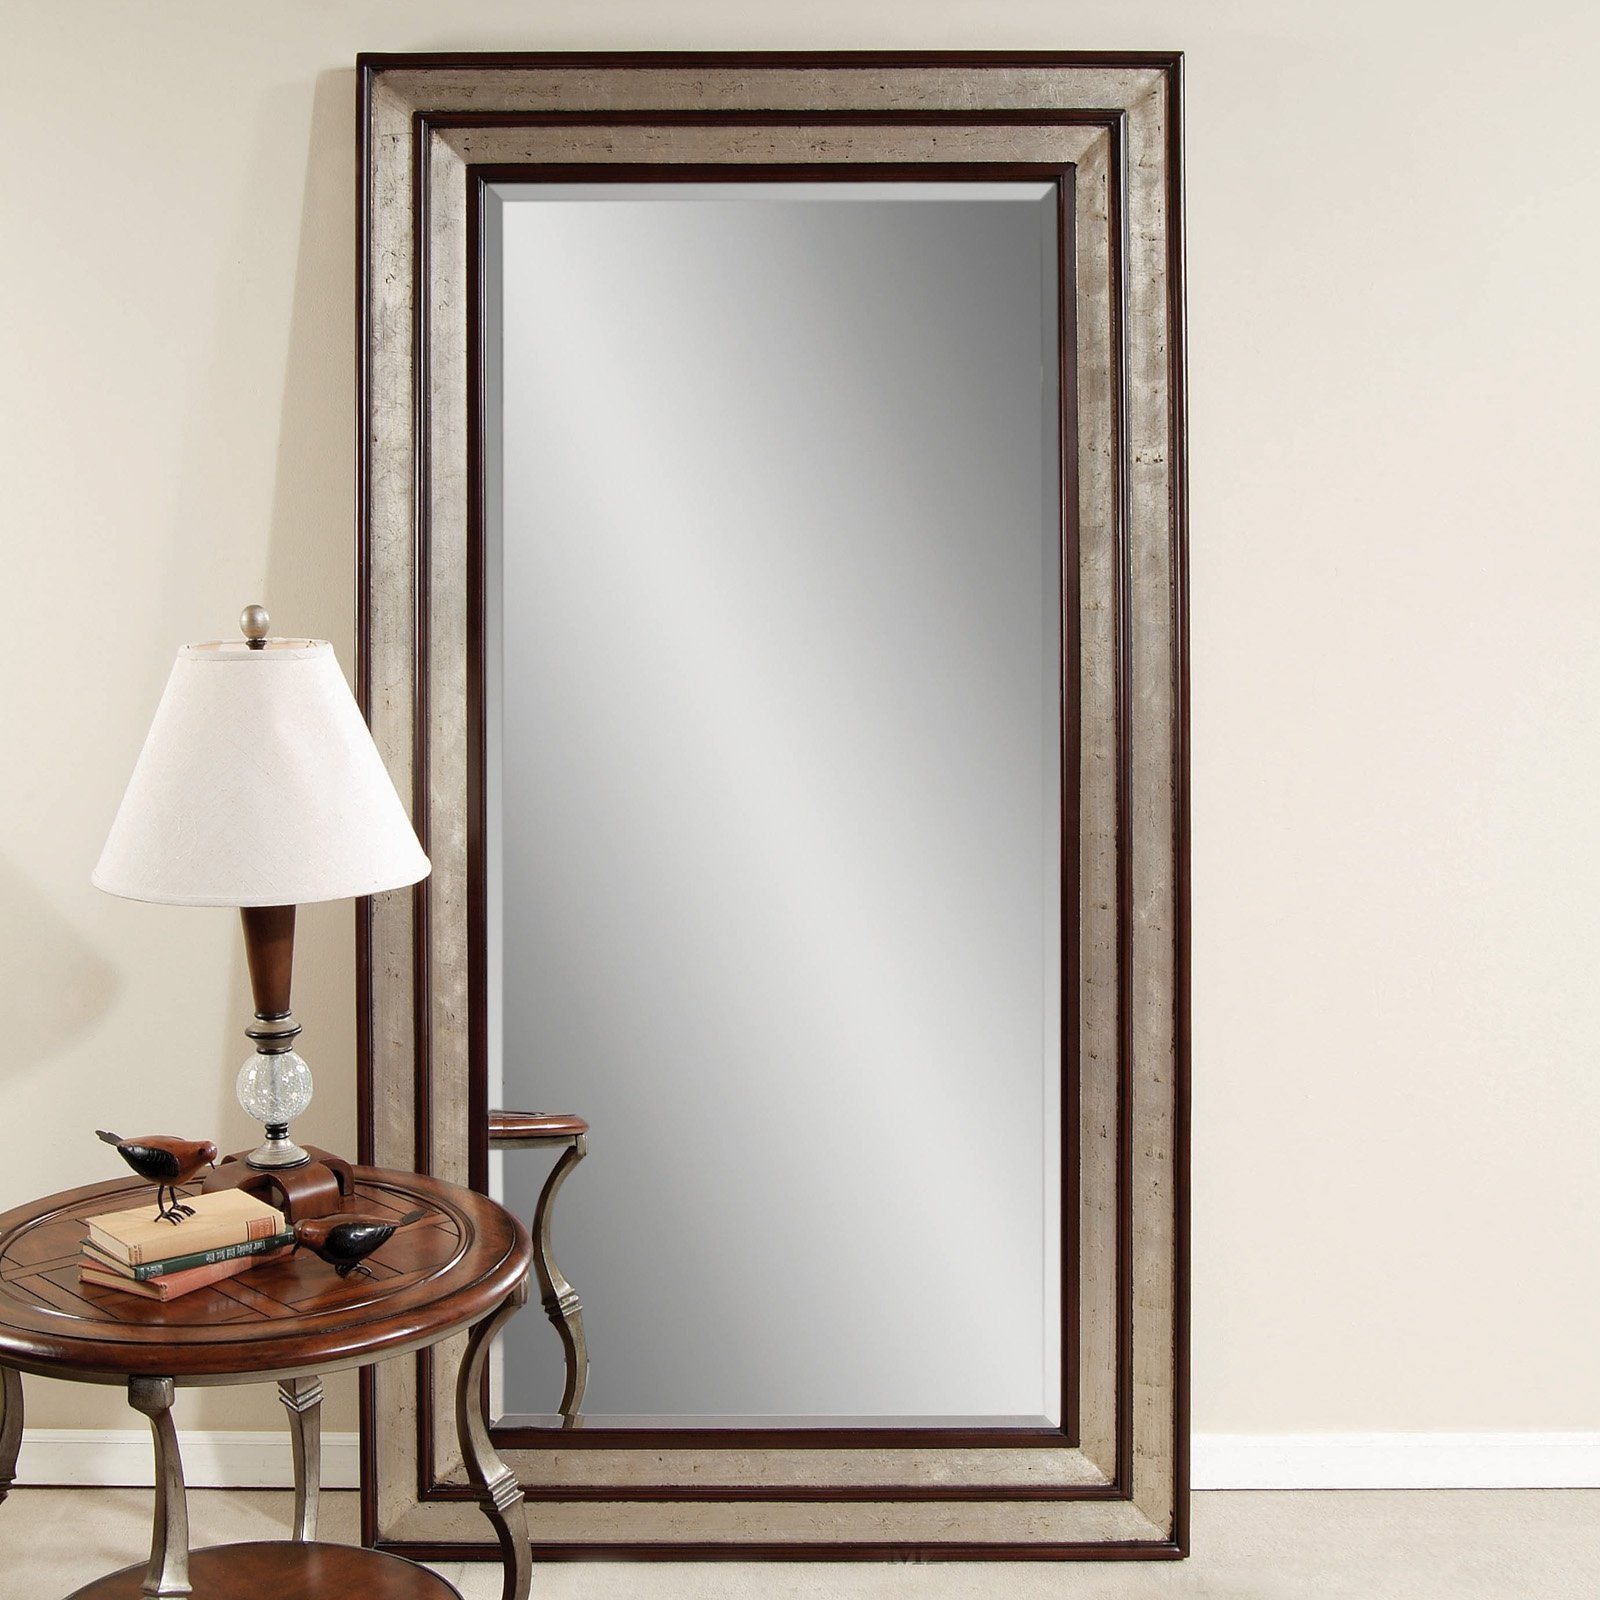 Silver Leaf Black Accent Floor Leaner Mirror W X H Fall Pertaining To Silver Frame Accent Mirrors (View 11 of 30)